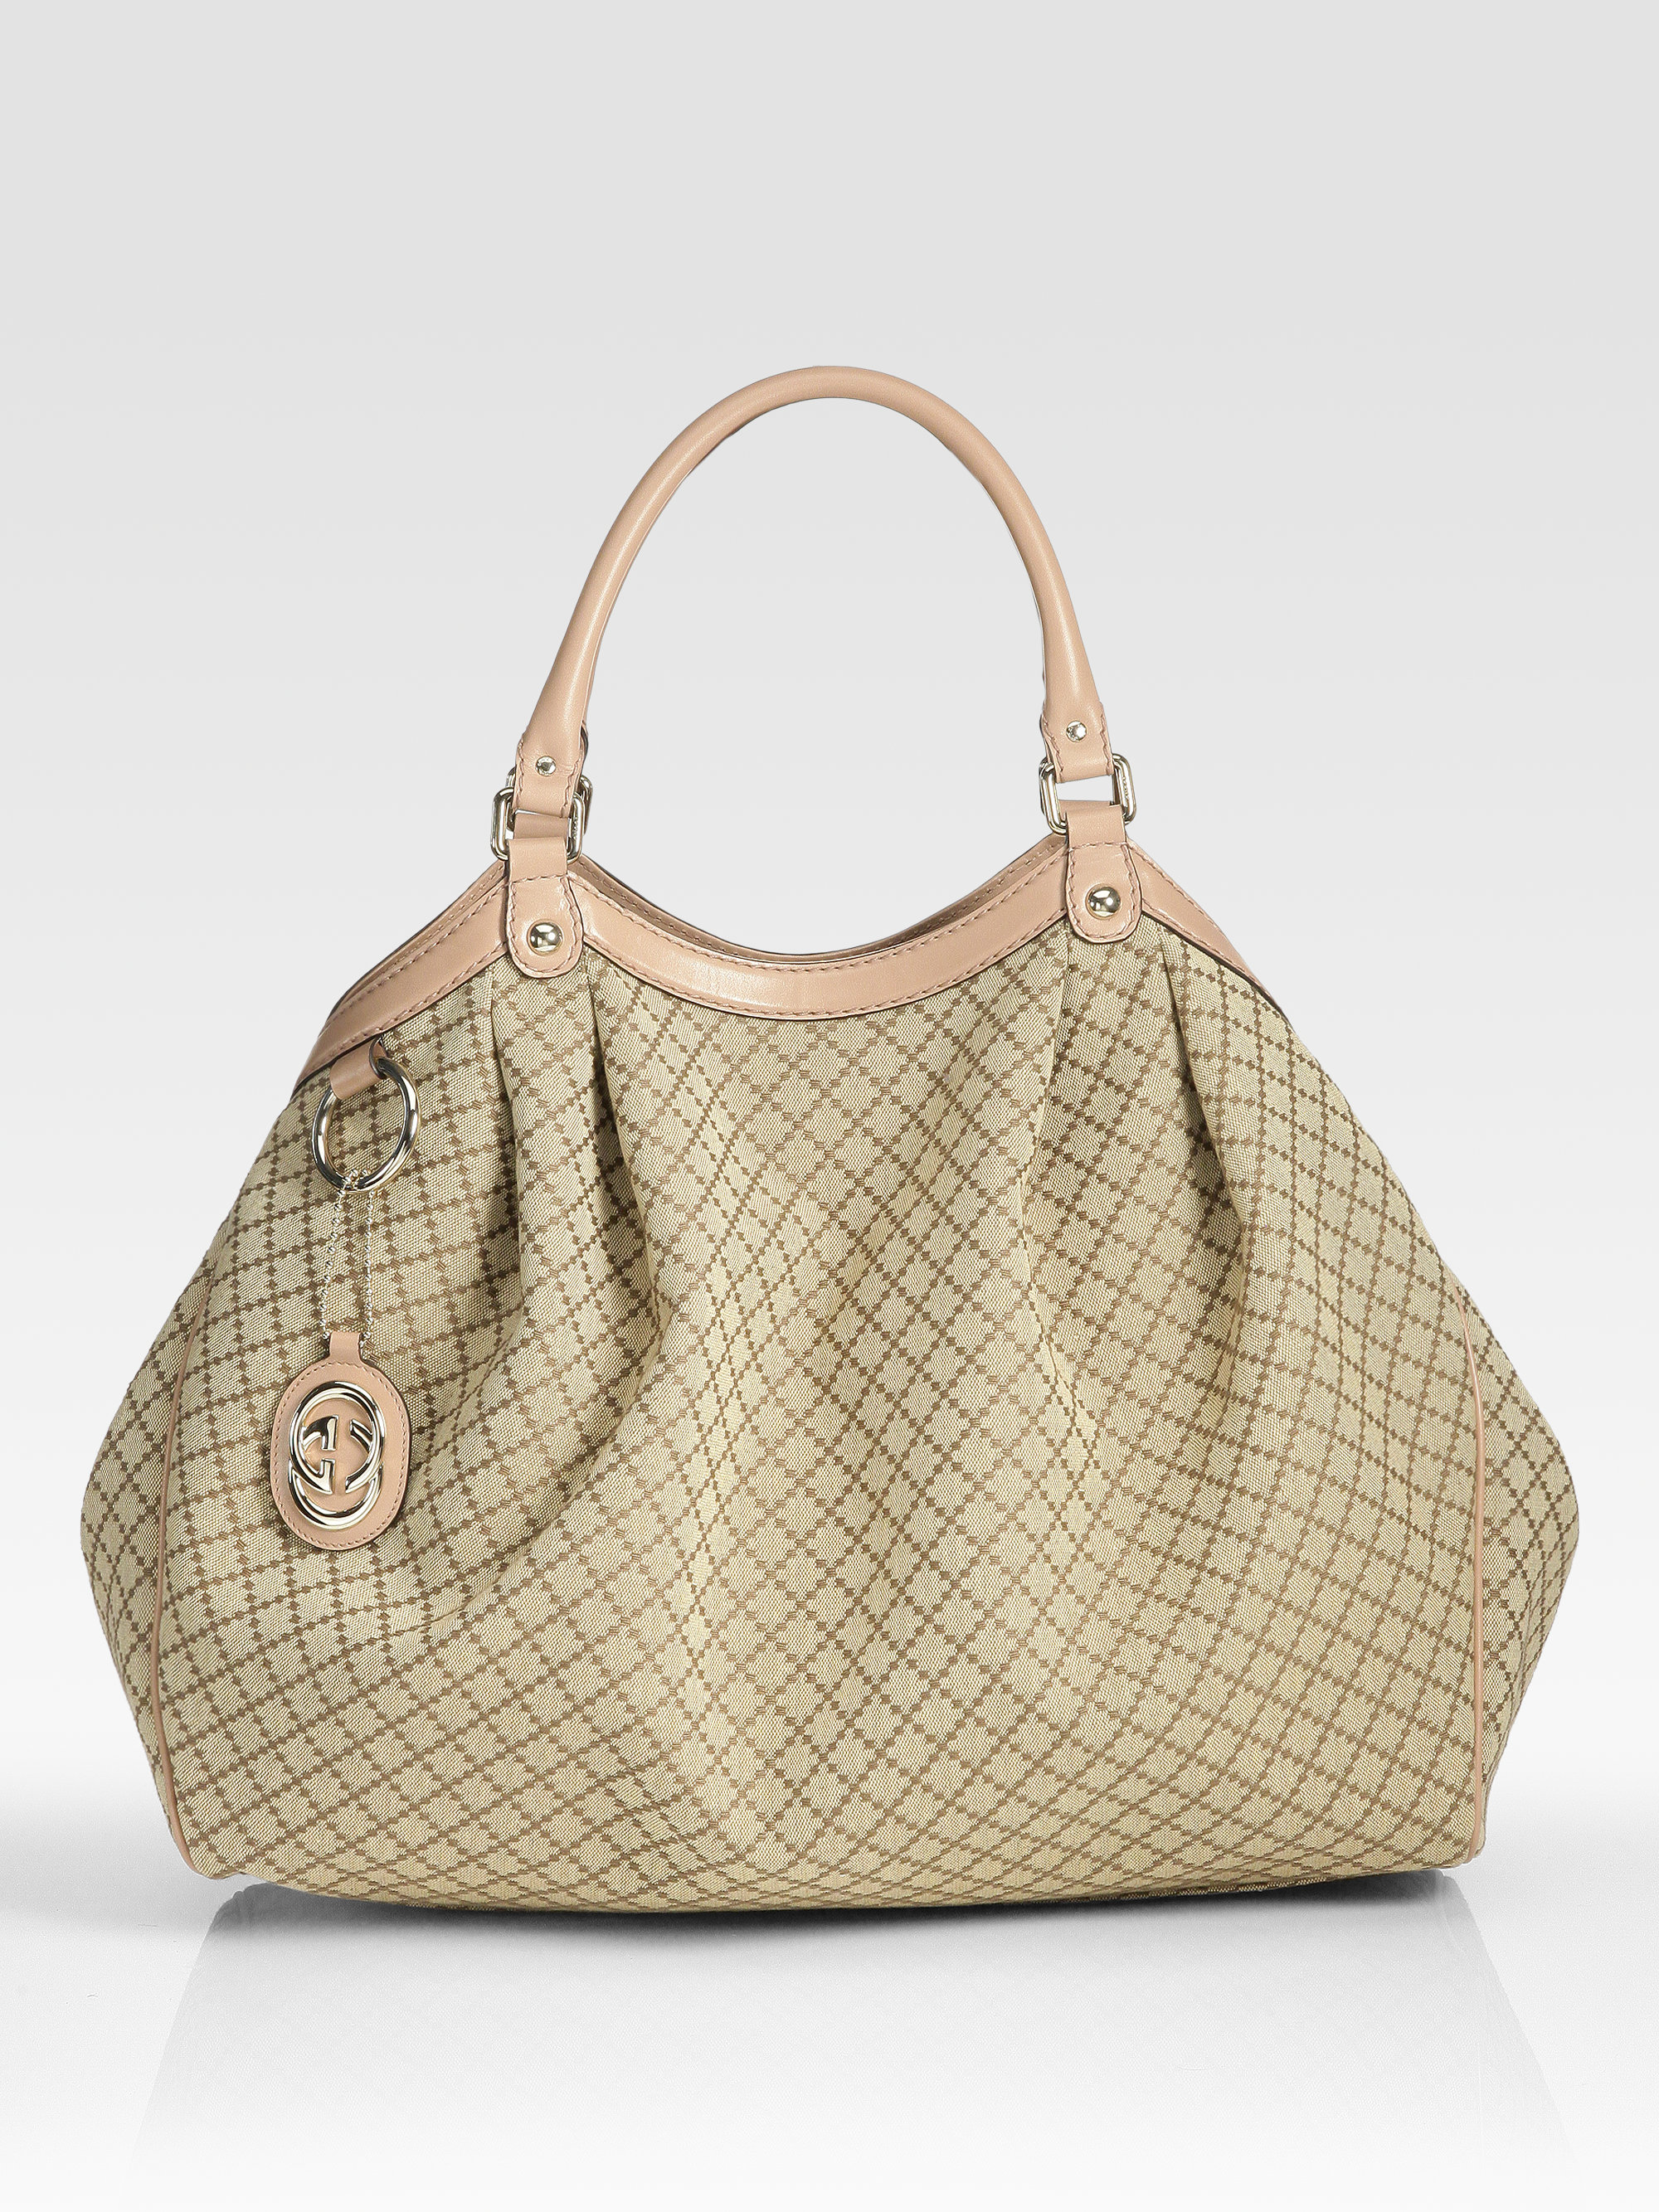 Gucci Sukey Large Tote Bag In Beige Lyst